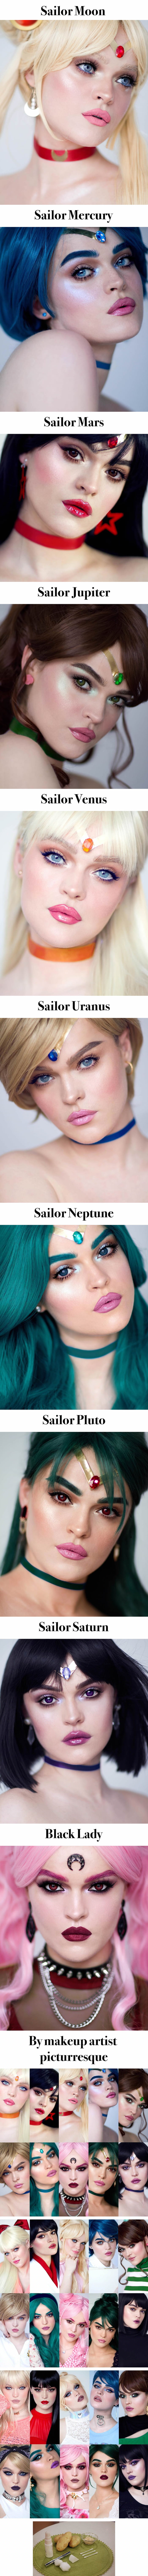 a2r0MYZ_700b Makeup artist does up every single Sailor Senshi from Sailor Moon